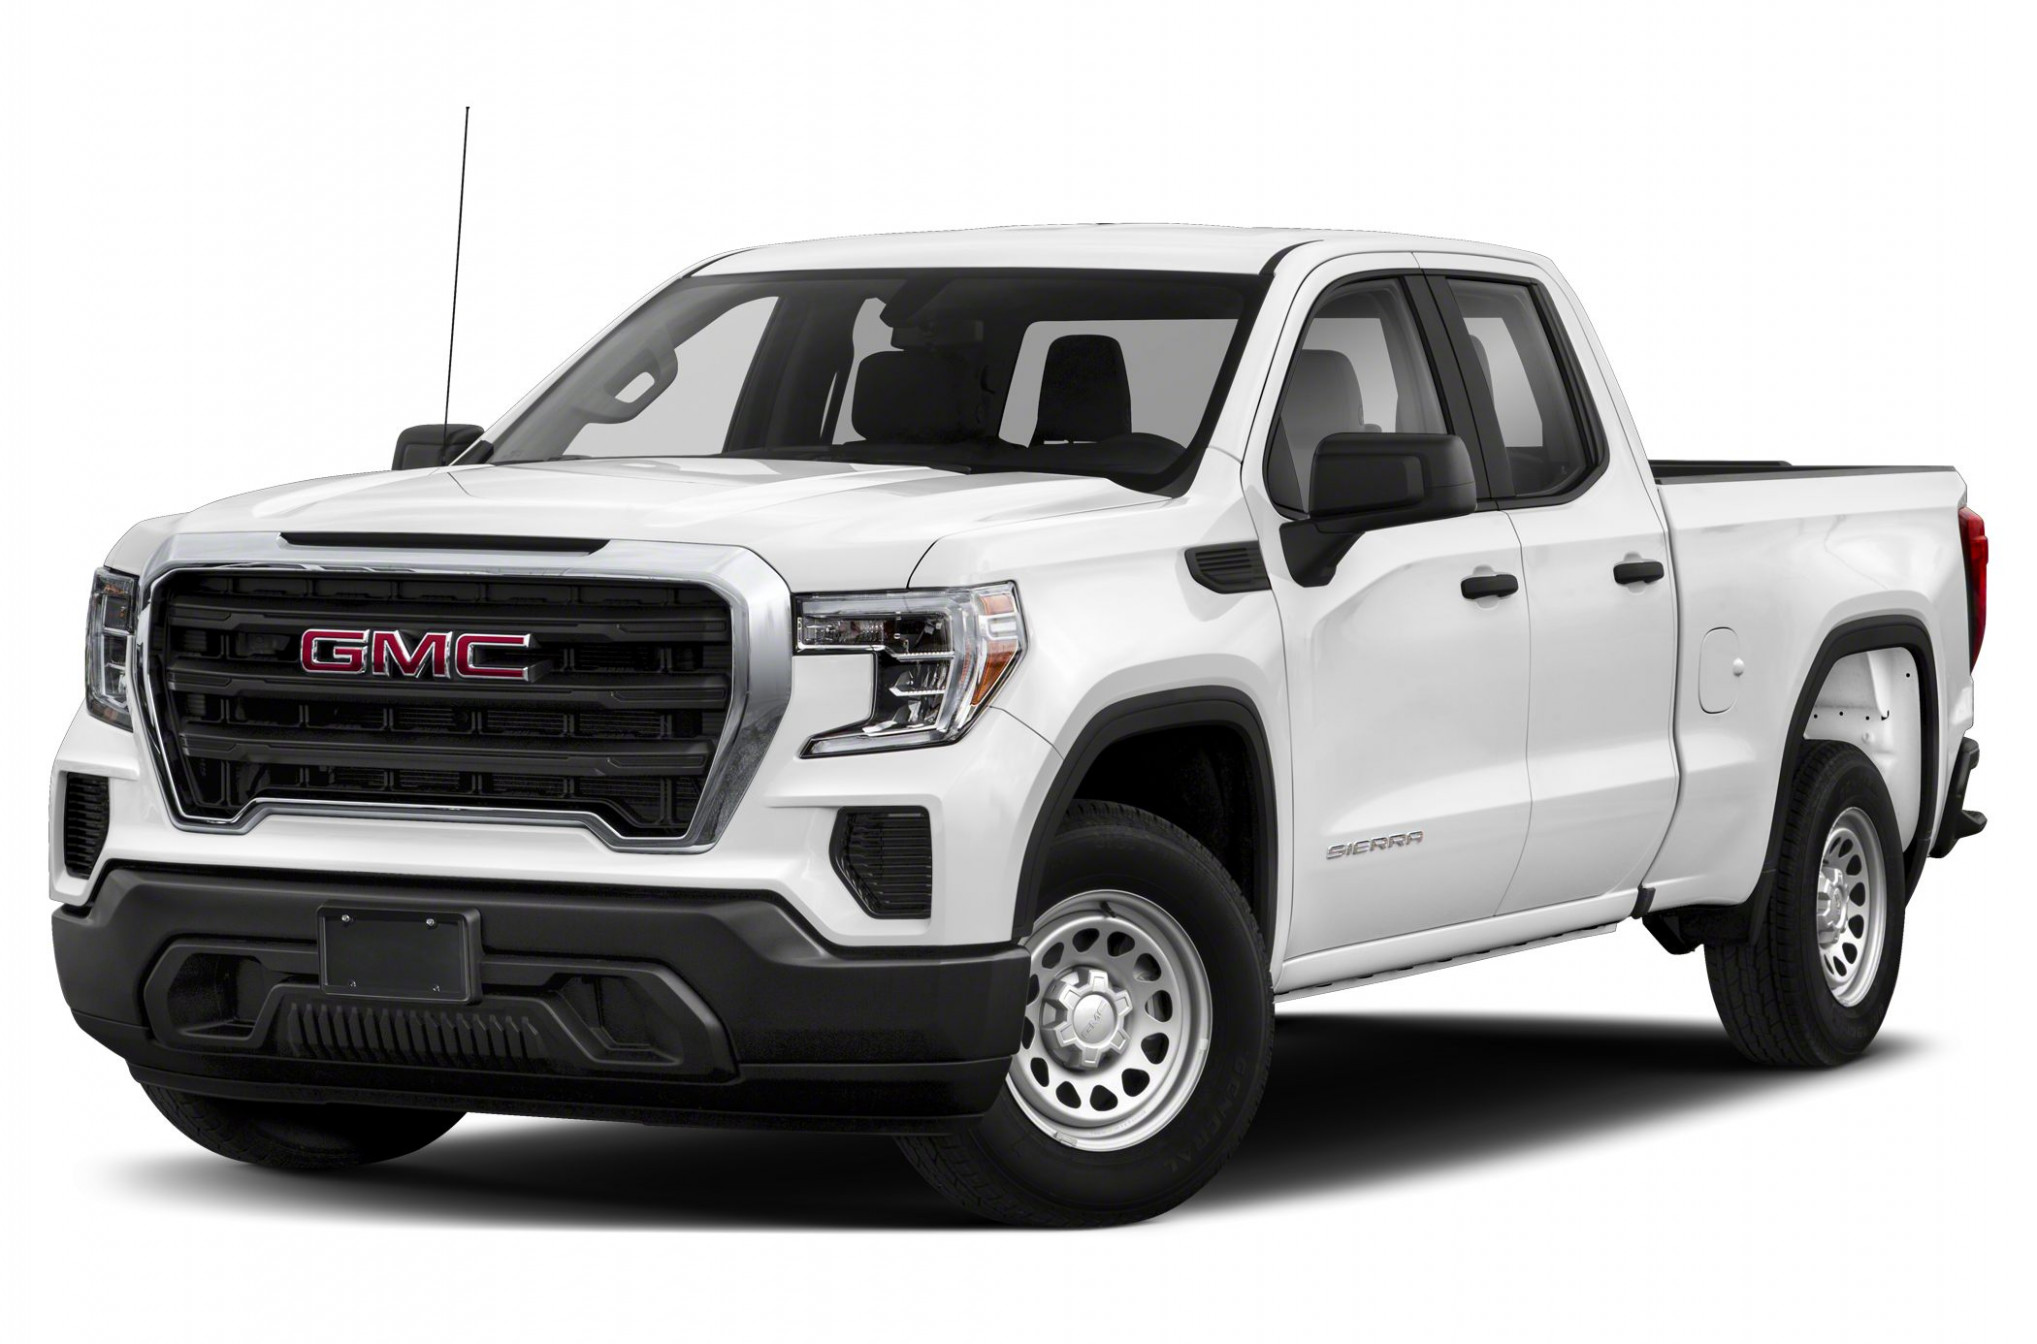 8 GMC Sierra 8 SLE 8x8 Double Cab 8.8 ft. box 187.8 in. WB Pricing  and Options